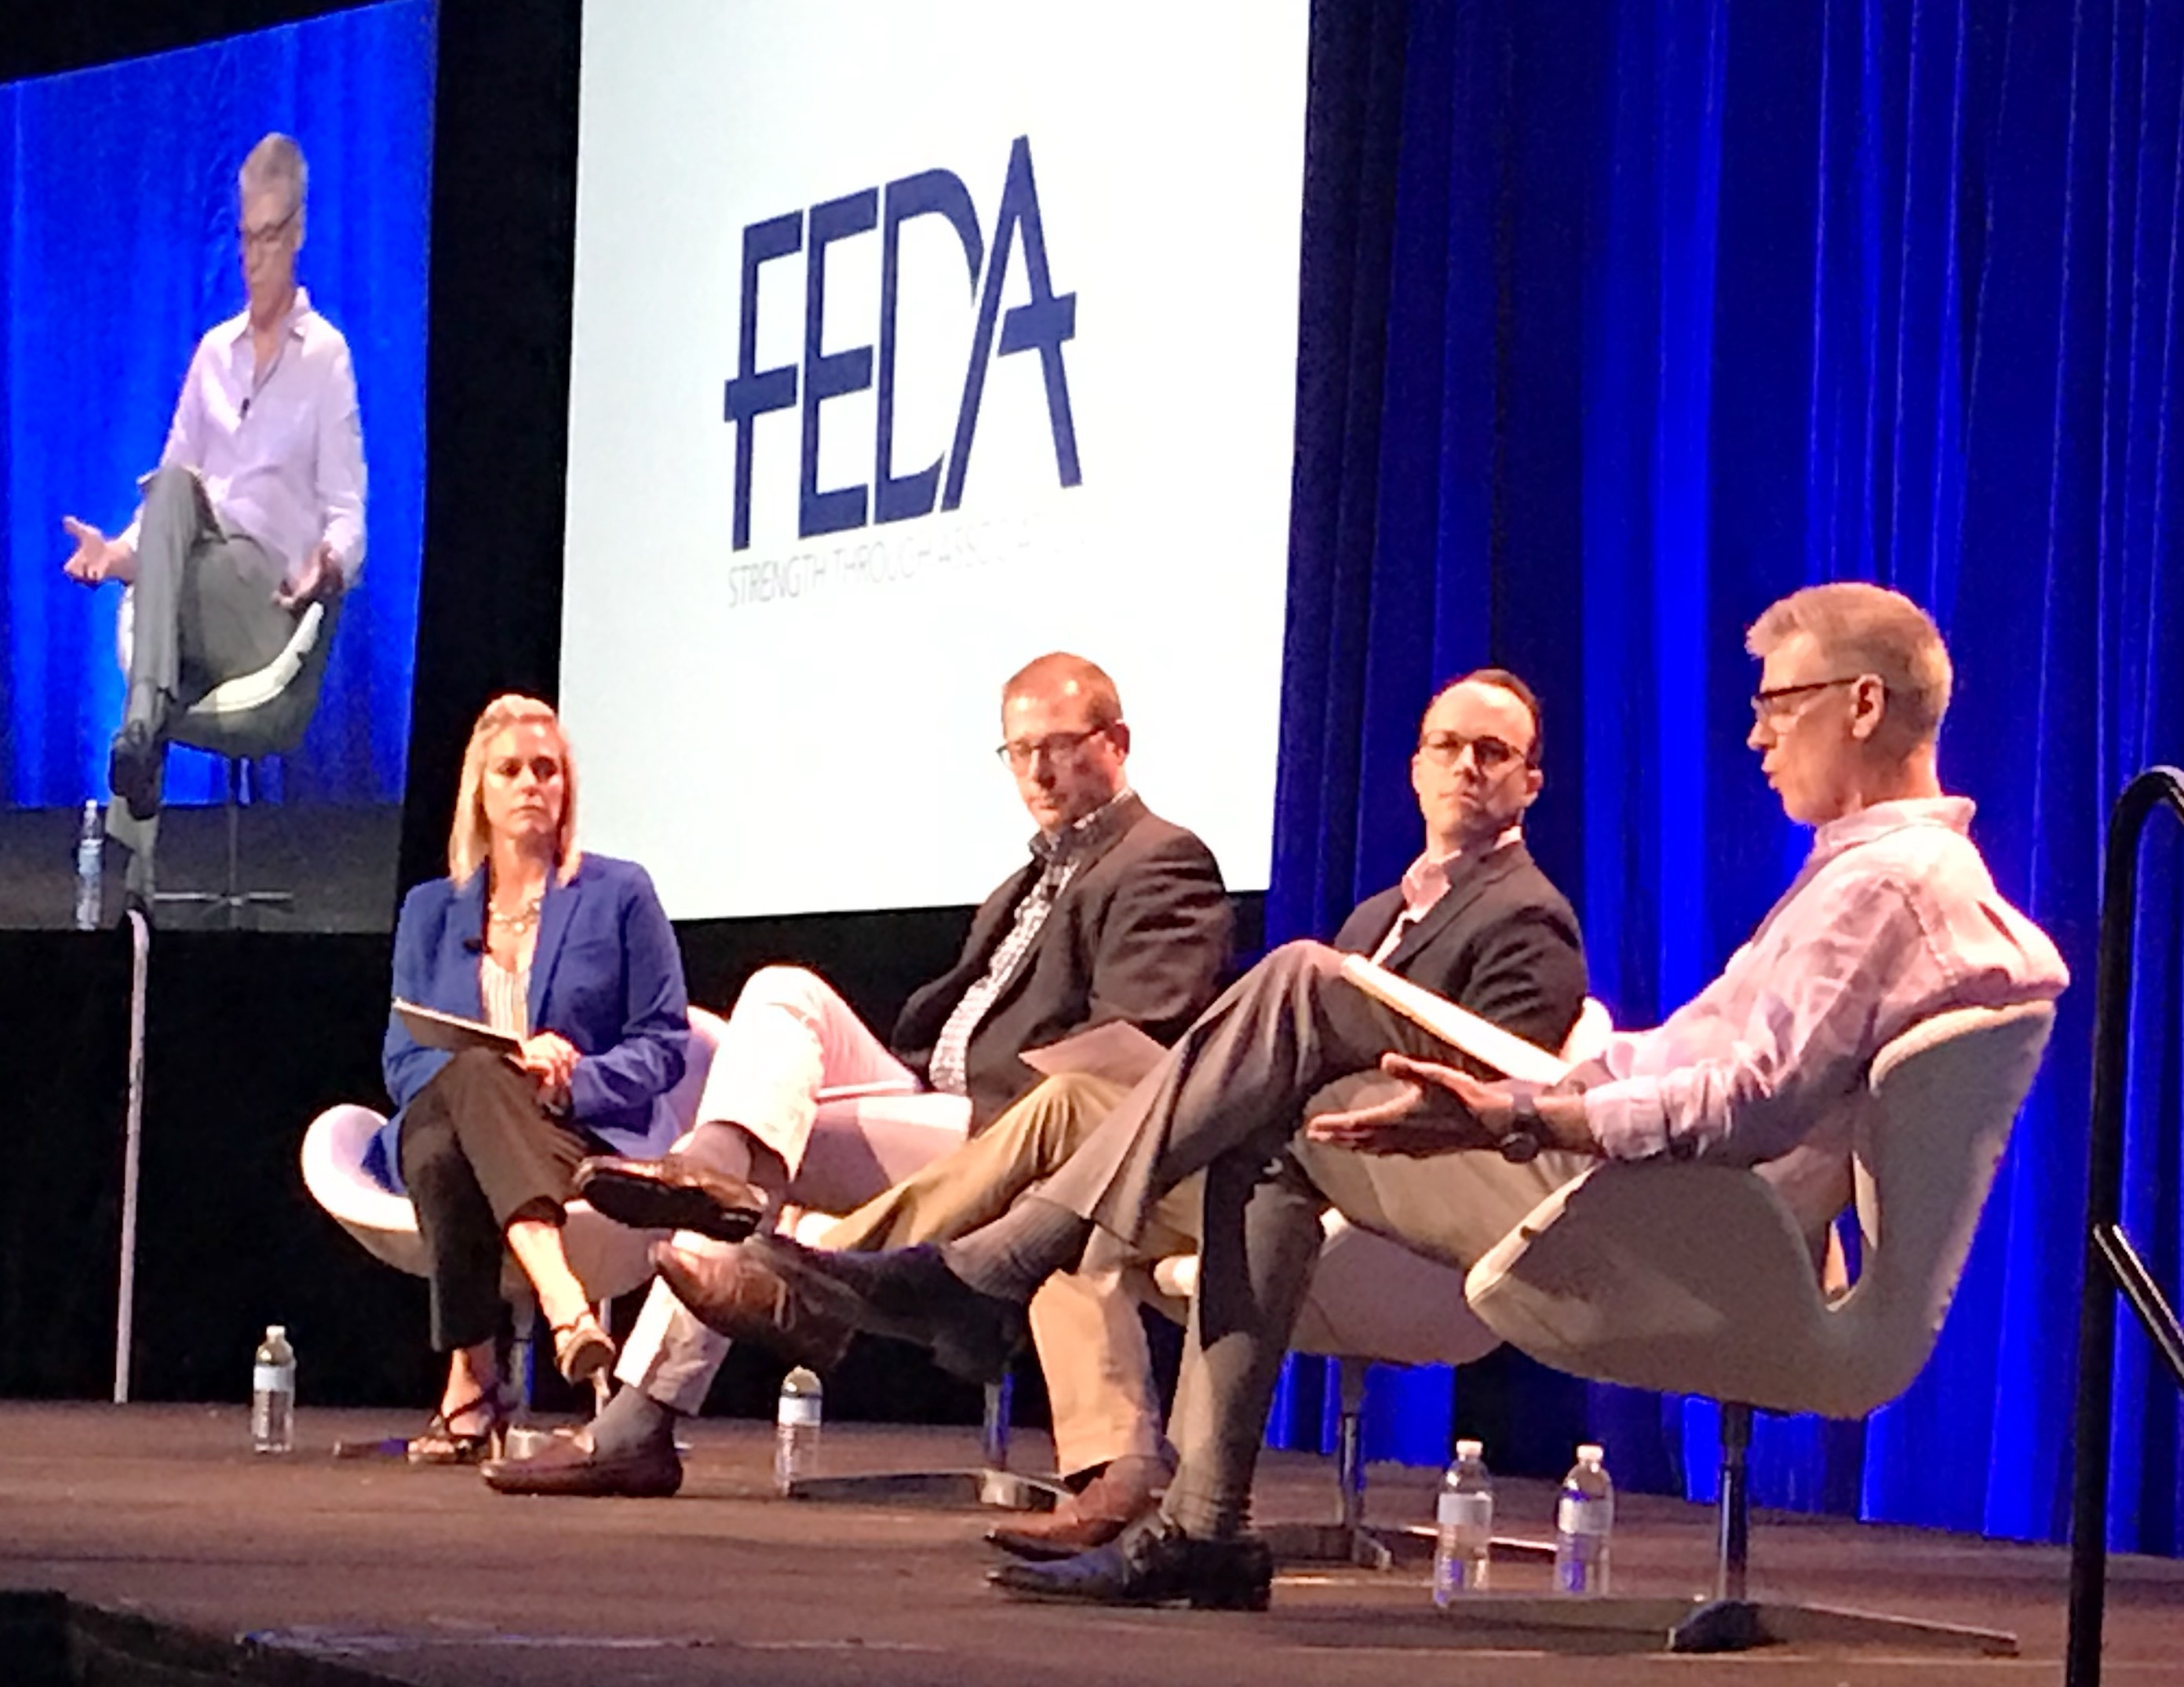 FEDA 2019 Distributors Conference